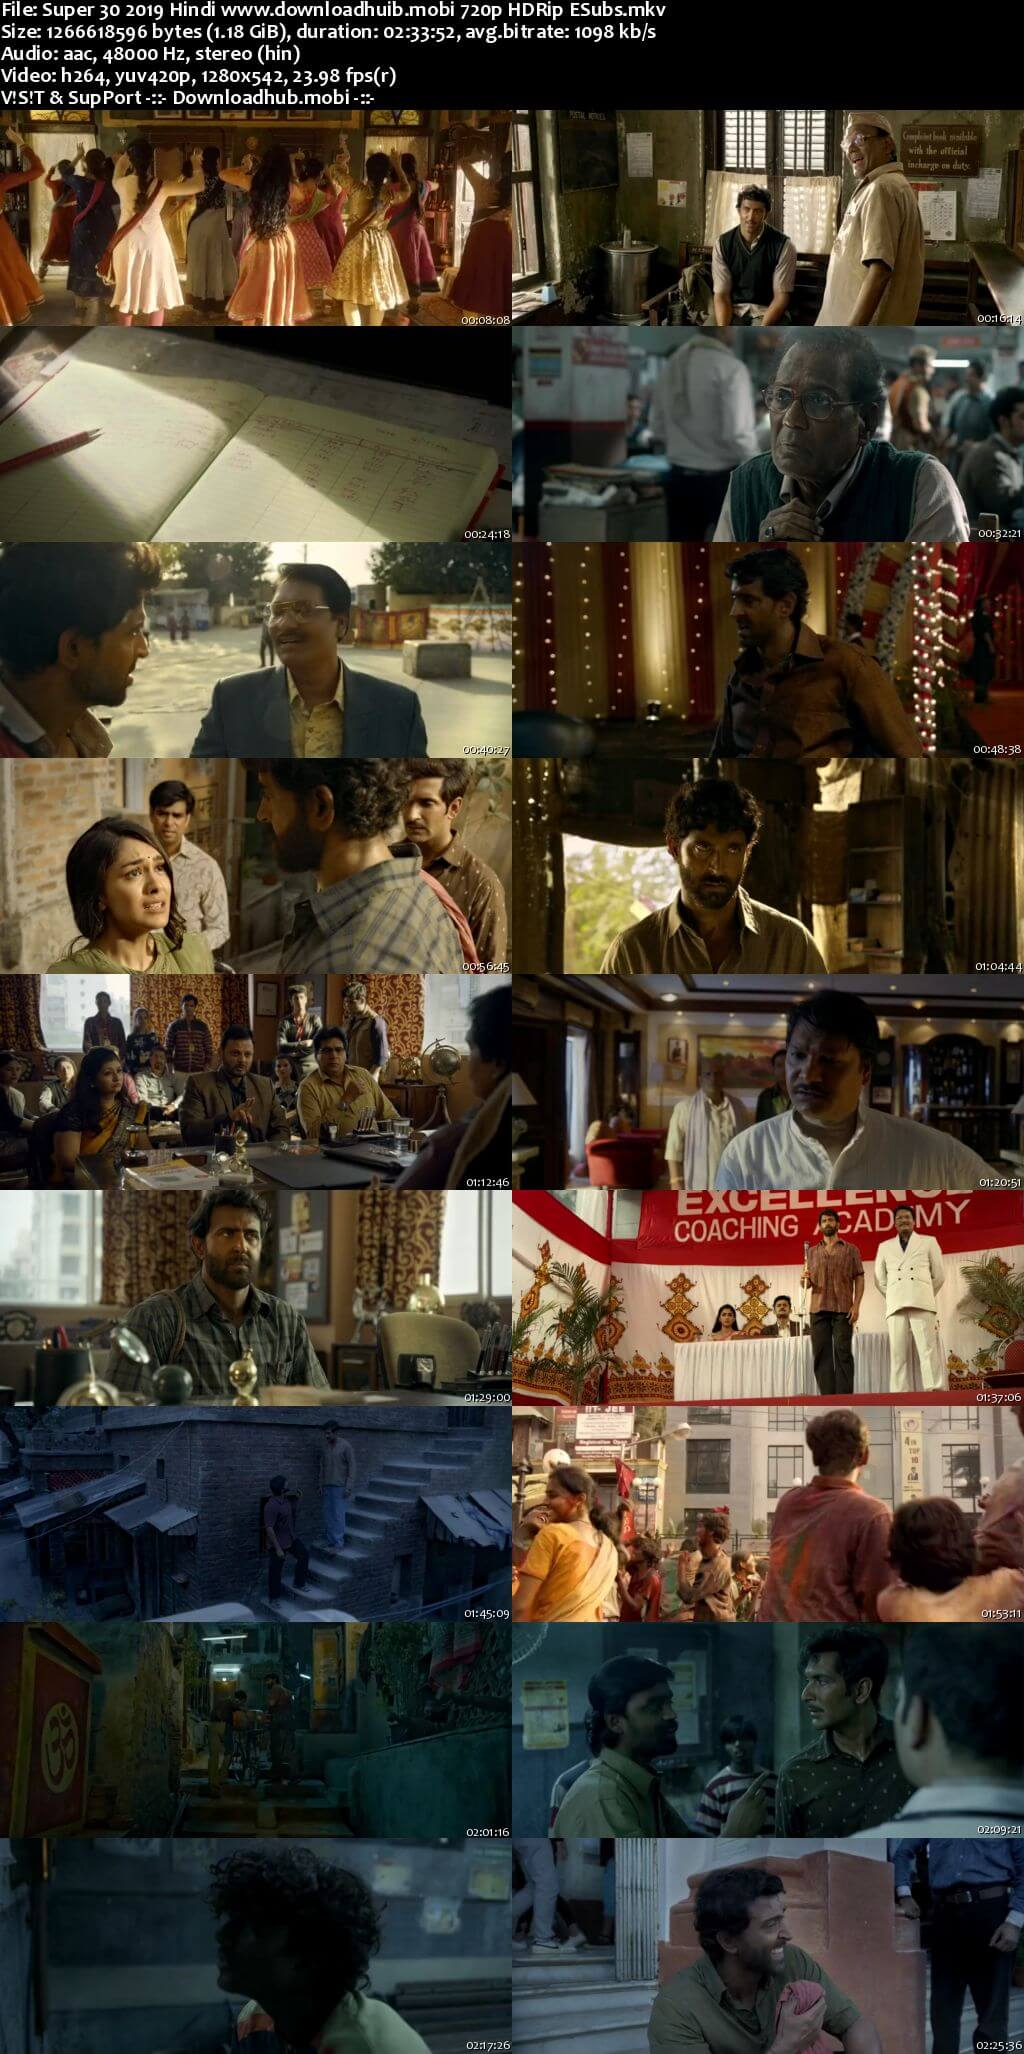 Super 30 2019 Hindi 720p HDRip ESubs